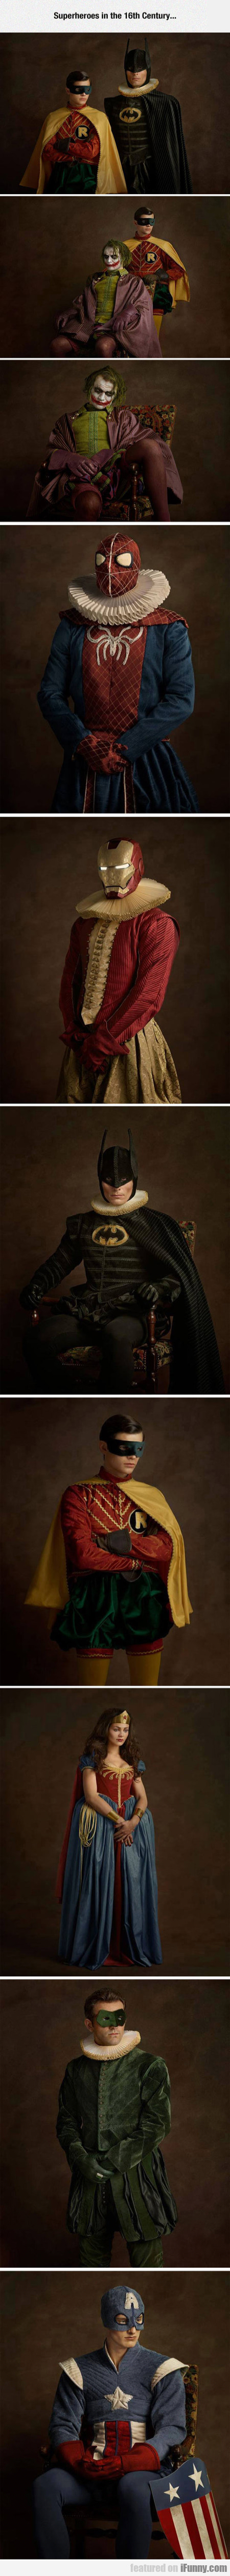 Superheroes In The 16th Century....